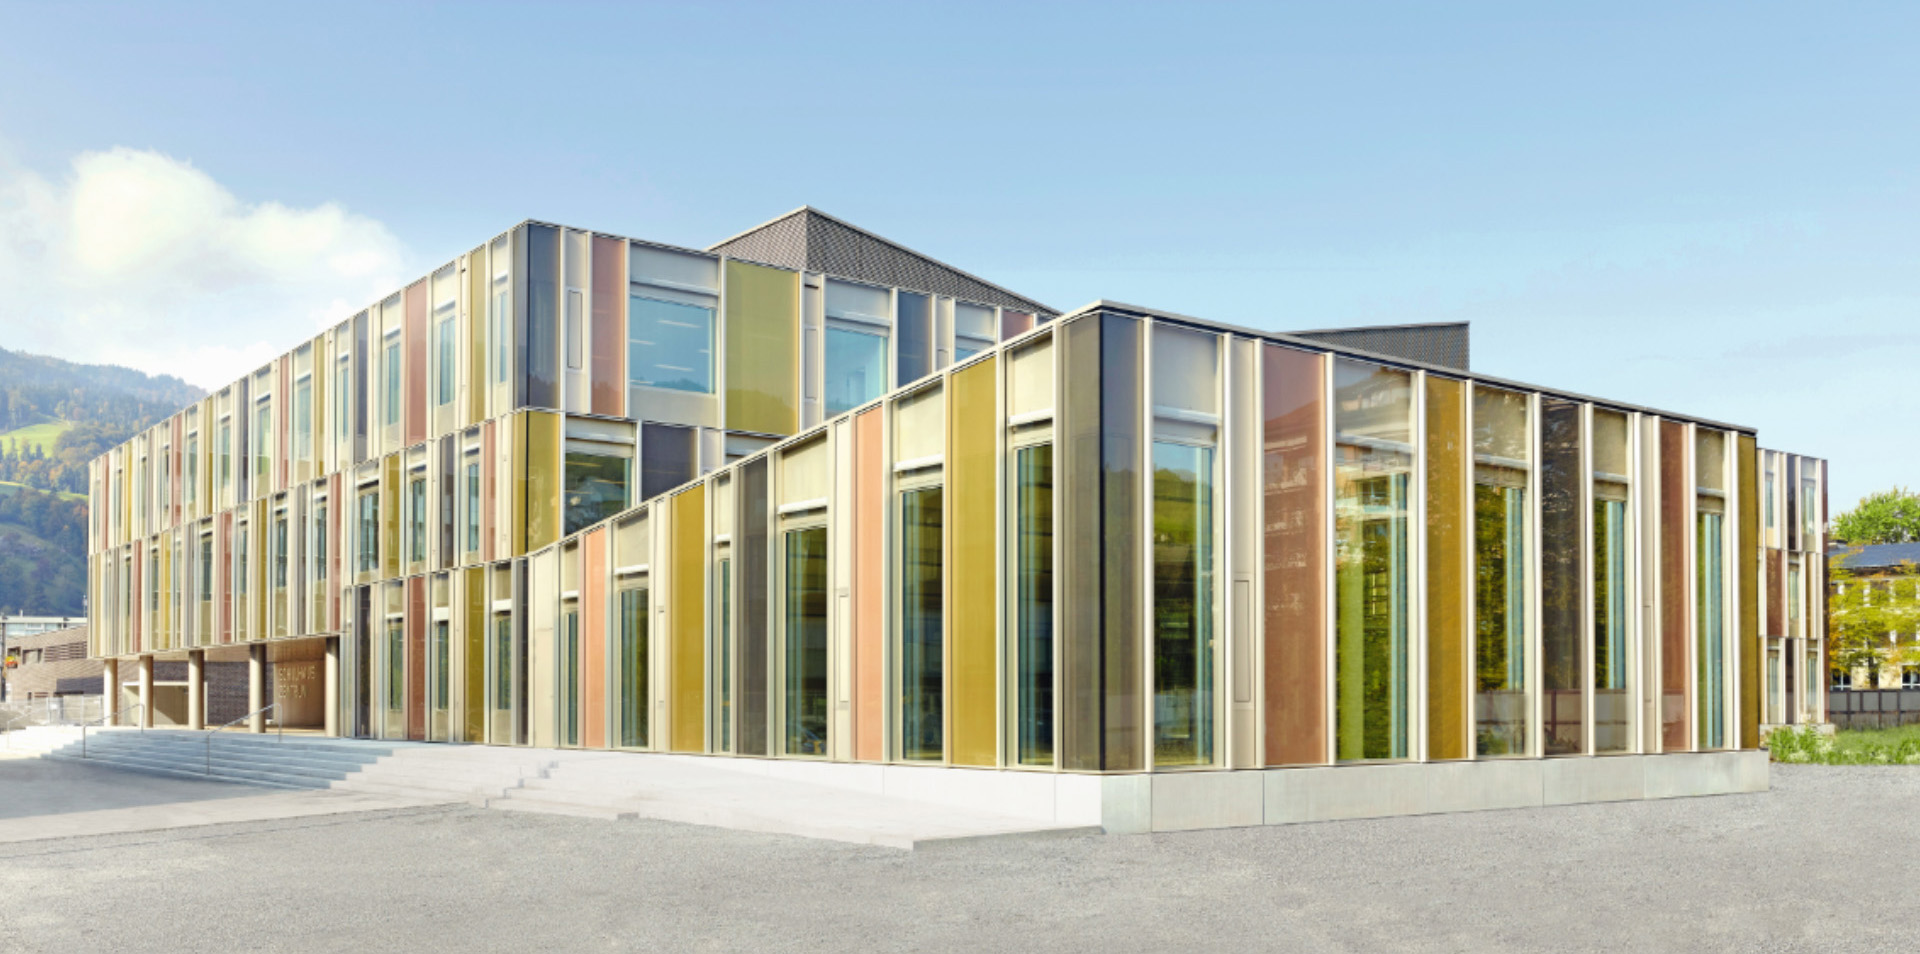 School with colored glass facades